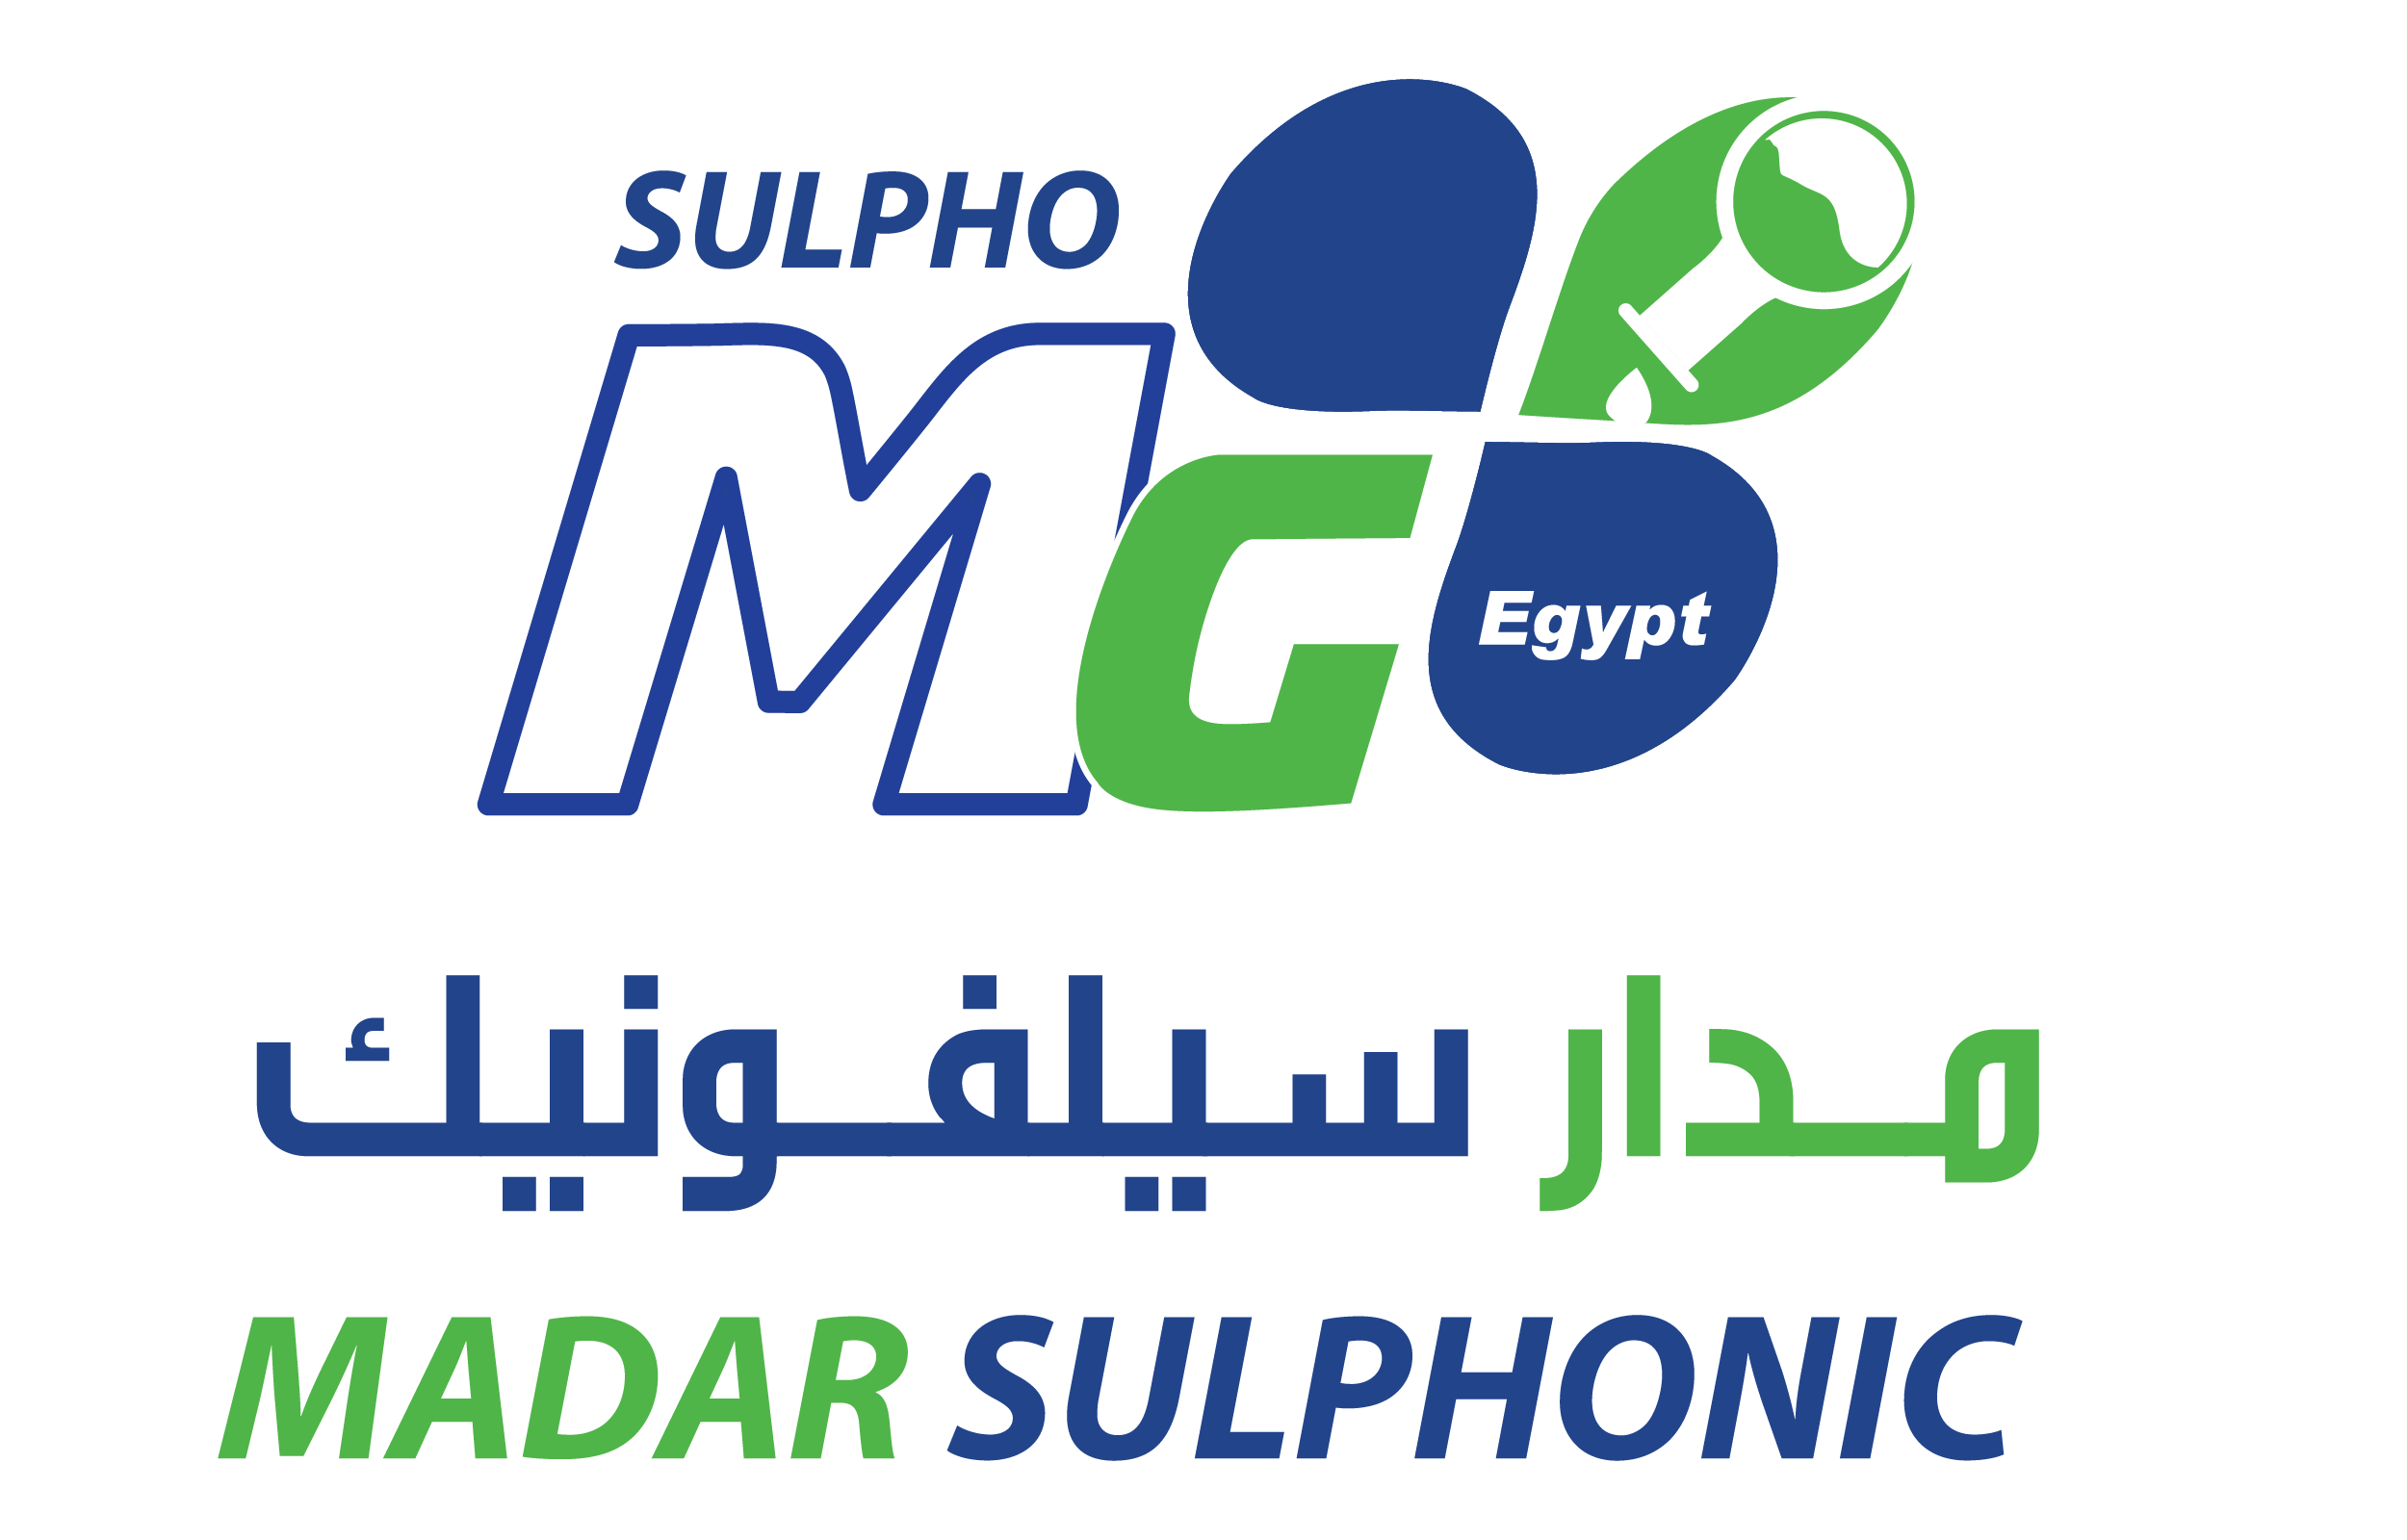 A subsidiary of Madar Holding companies which is an extension and  an expansion of the Arabian sulphochemical company.